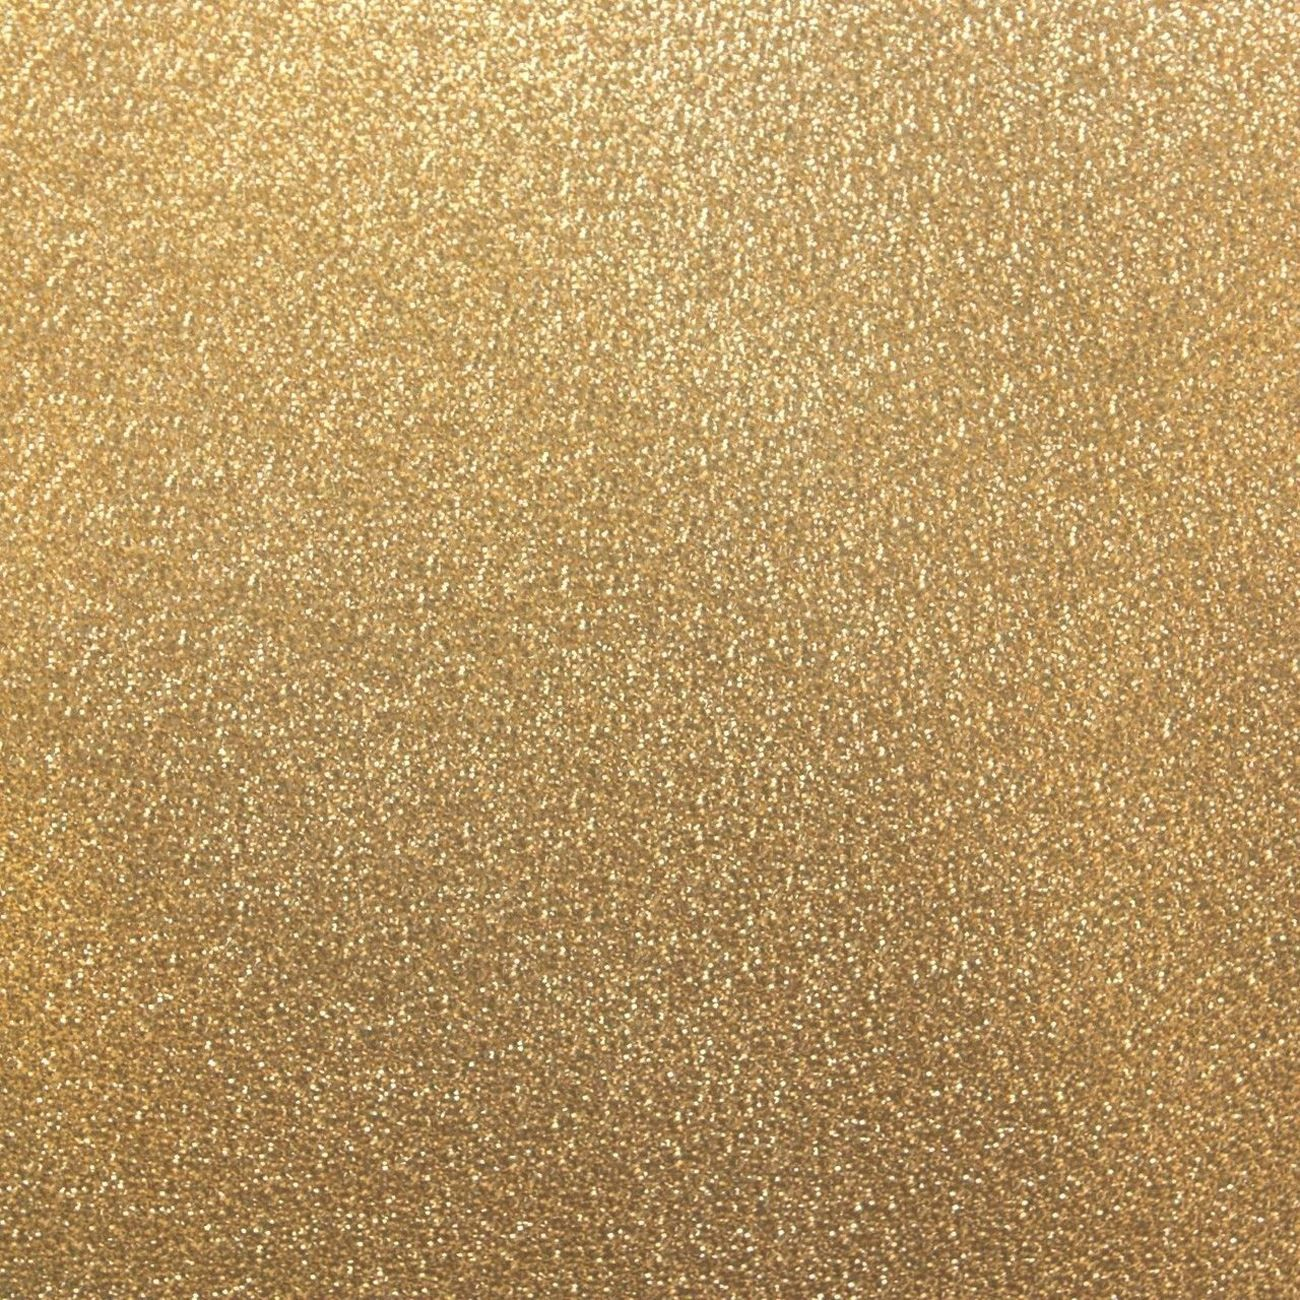 Gold Glitter Backgrounds HQ FreeCreatives